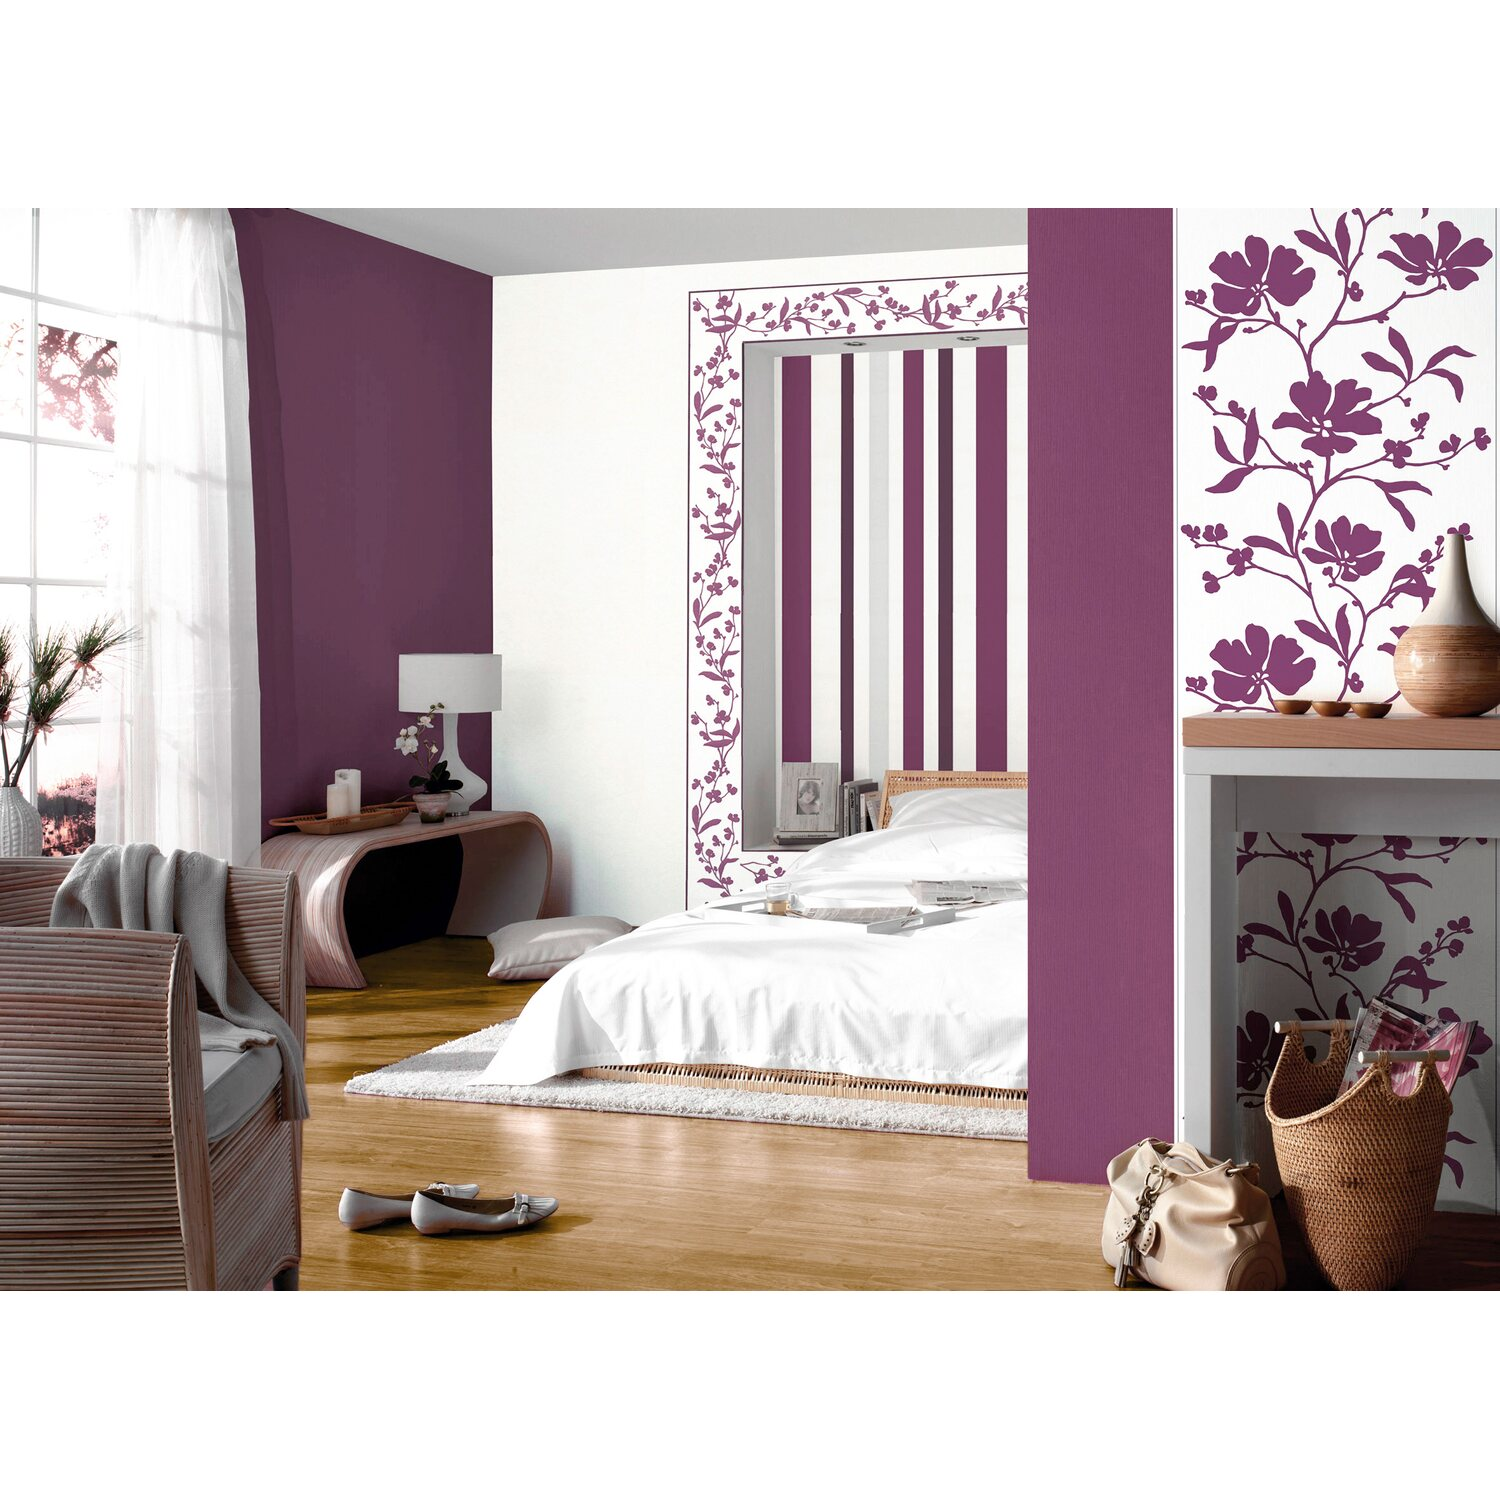 sch ner wohnen kollektion vliestapete blumenranke violett kaufen bei obi. Black Bedroom Furniture Sets. Home Design Ideas